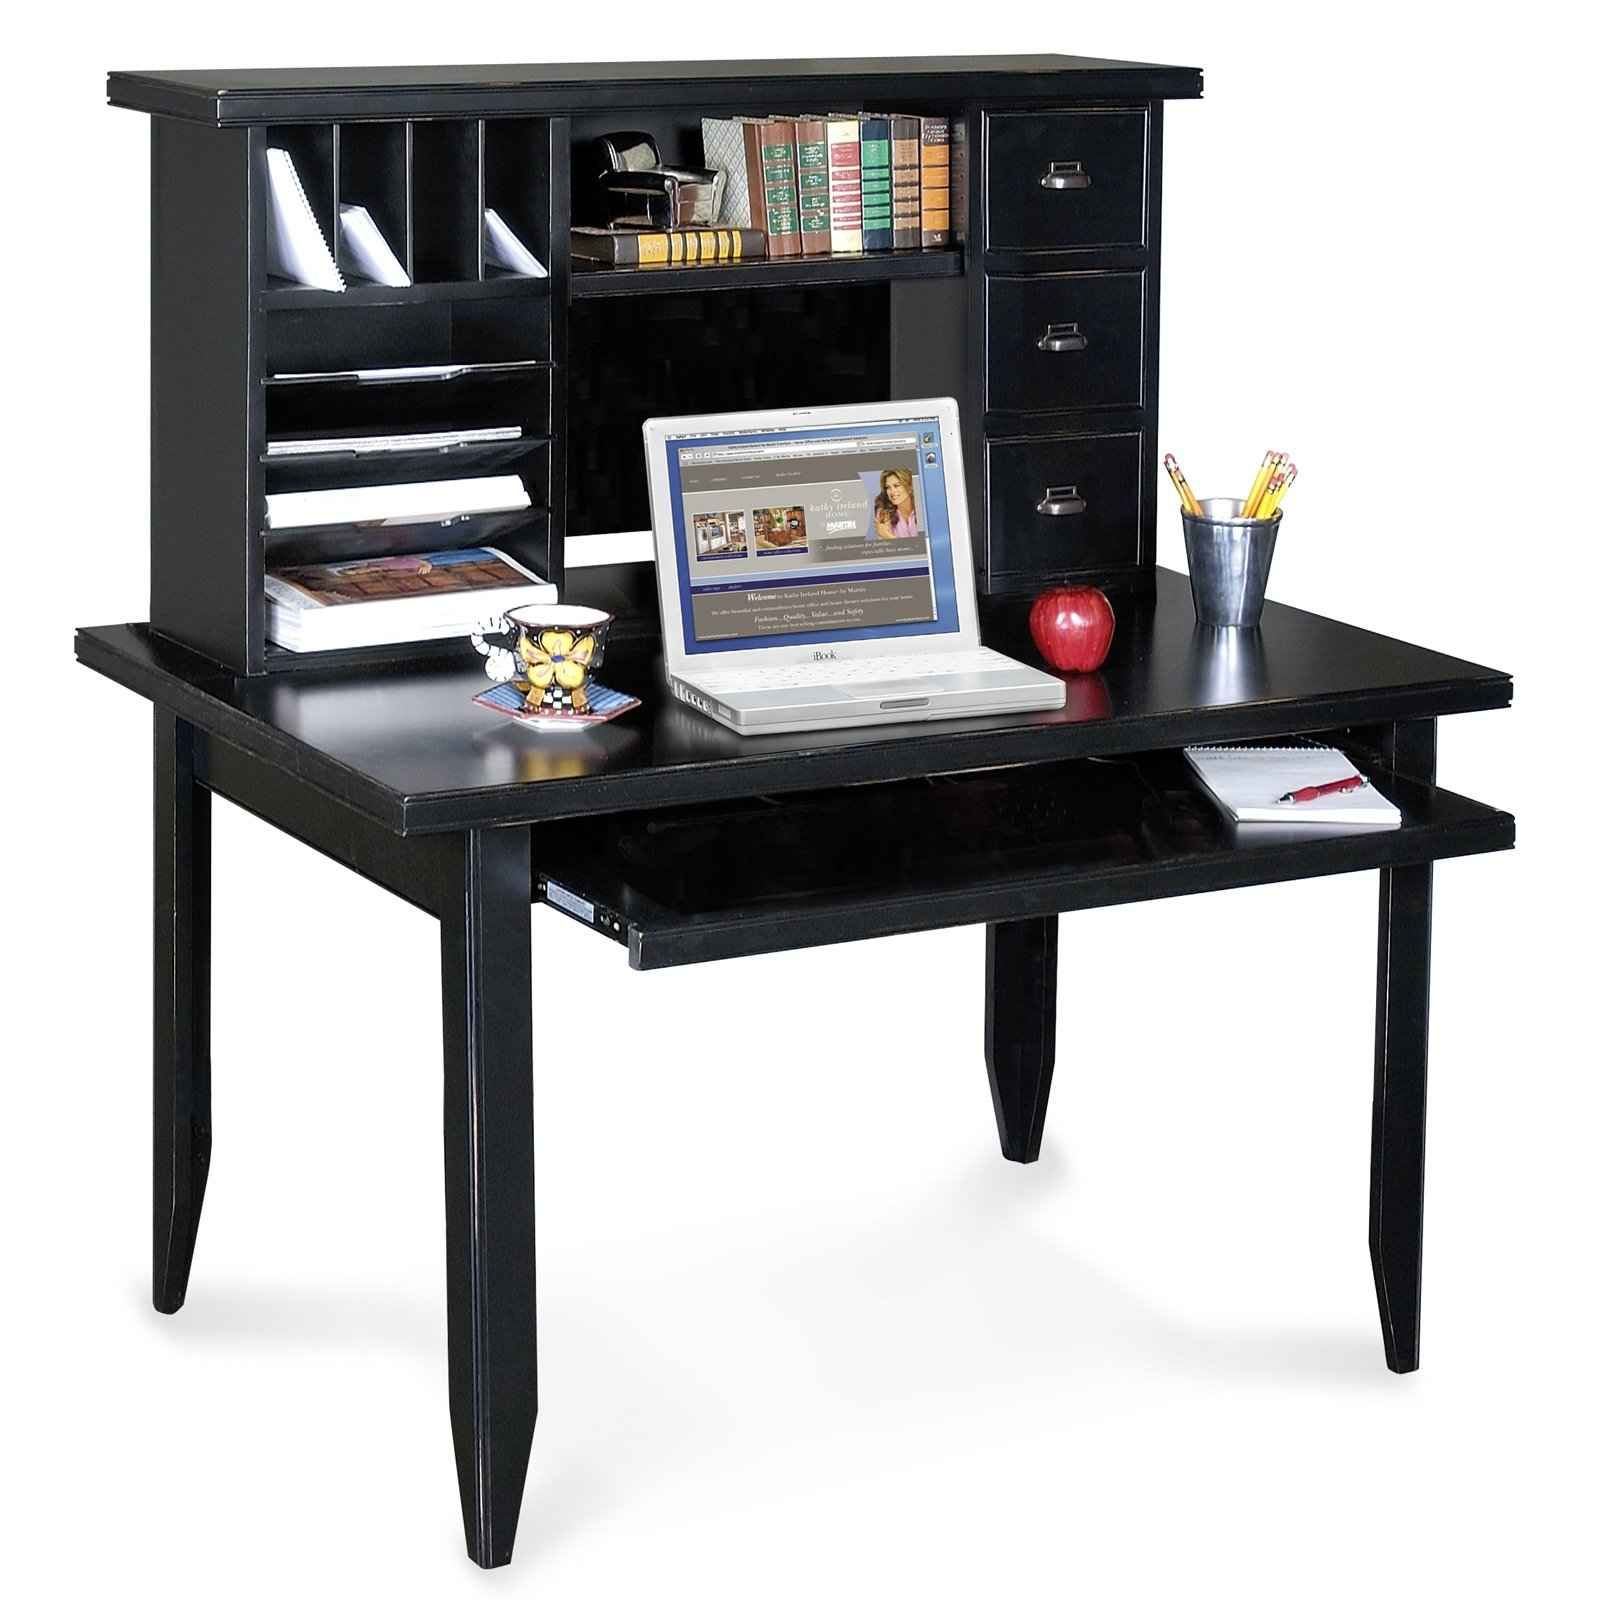 black corner desk Black puter Desk For Home fice